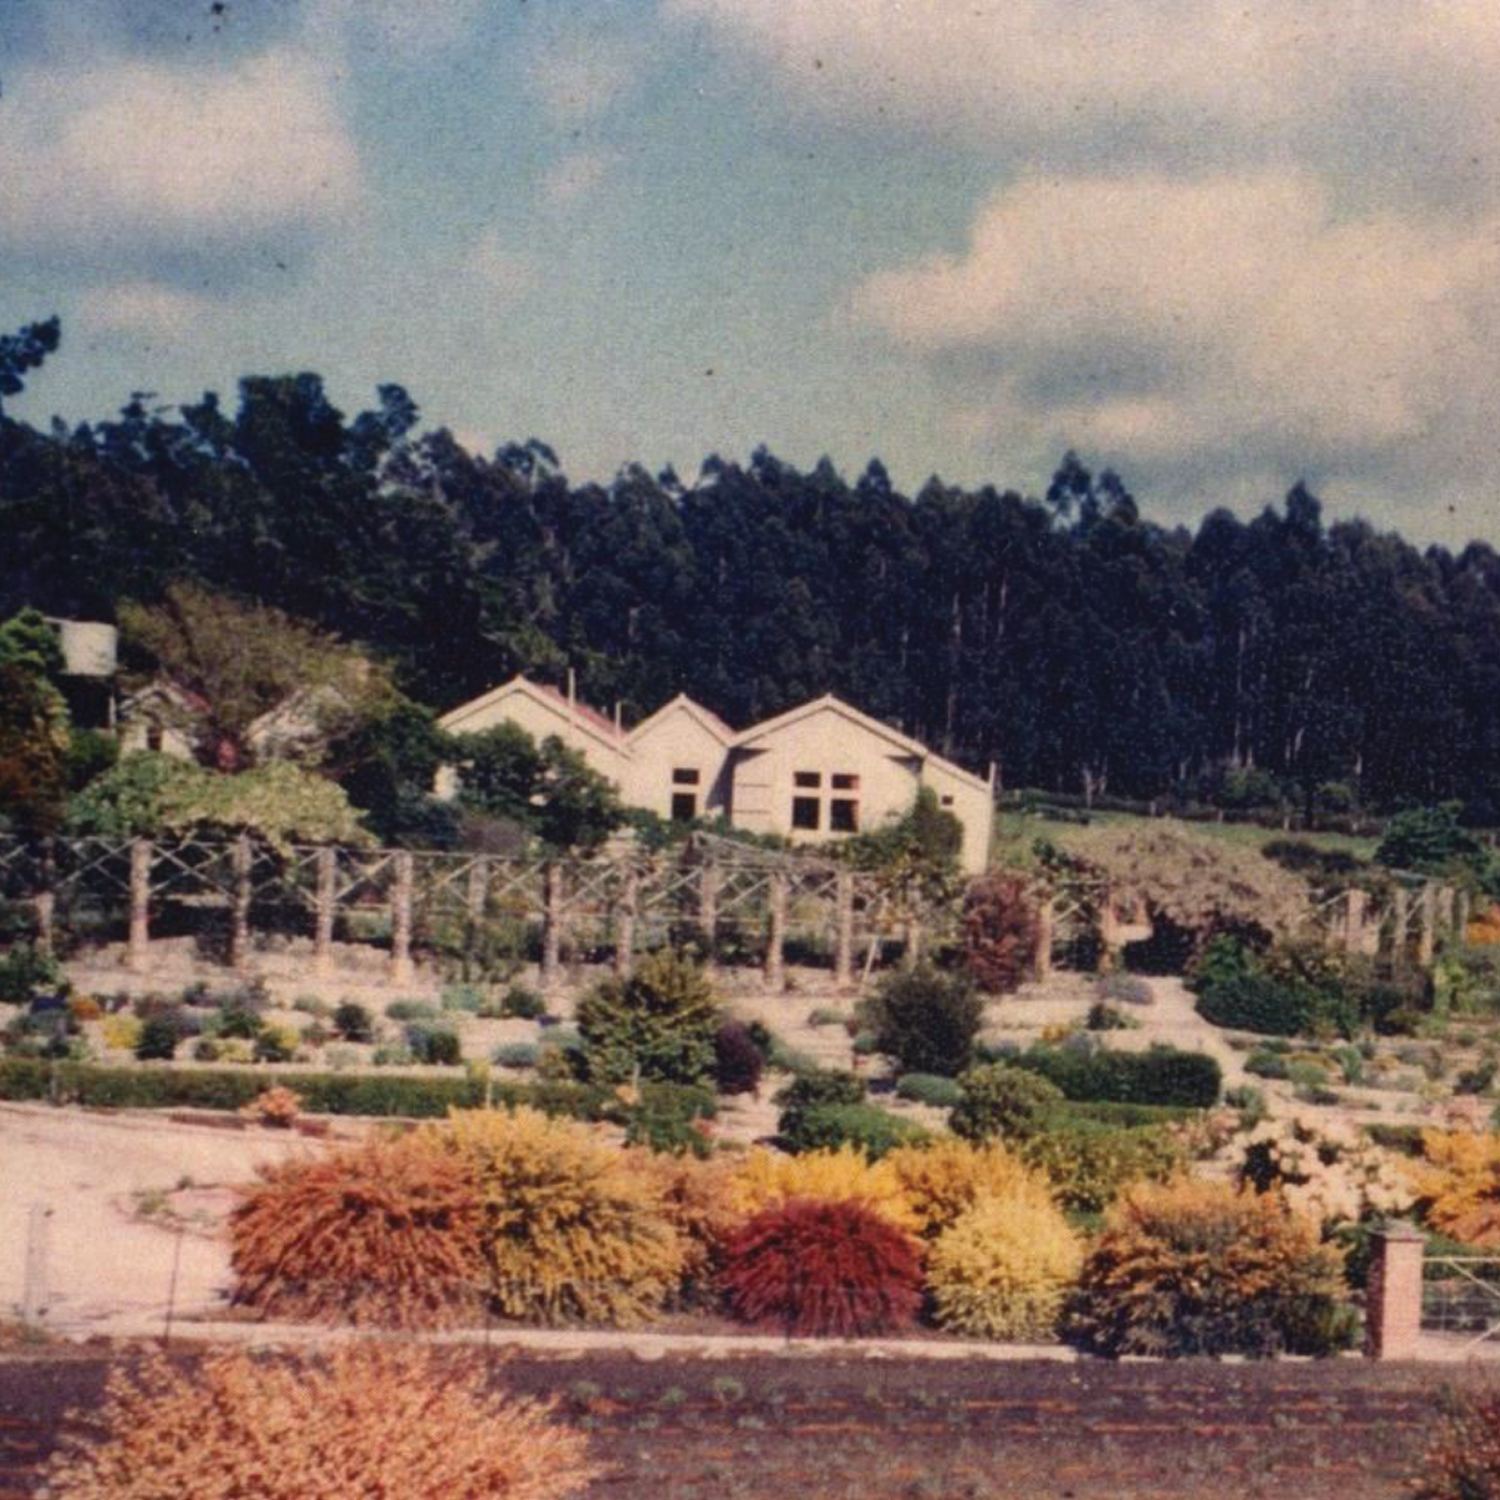 1960s - Bridestowe Homestead